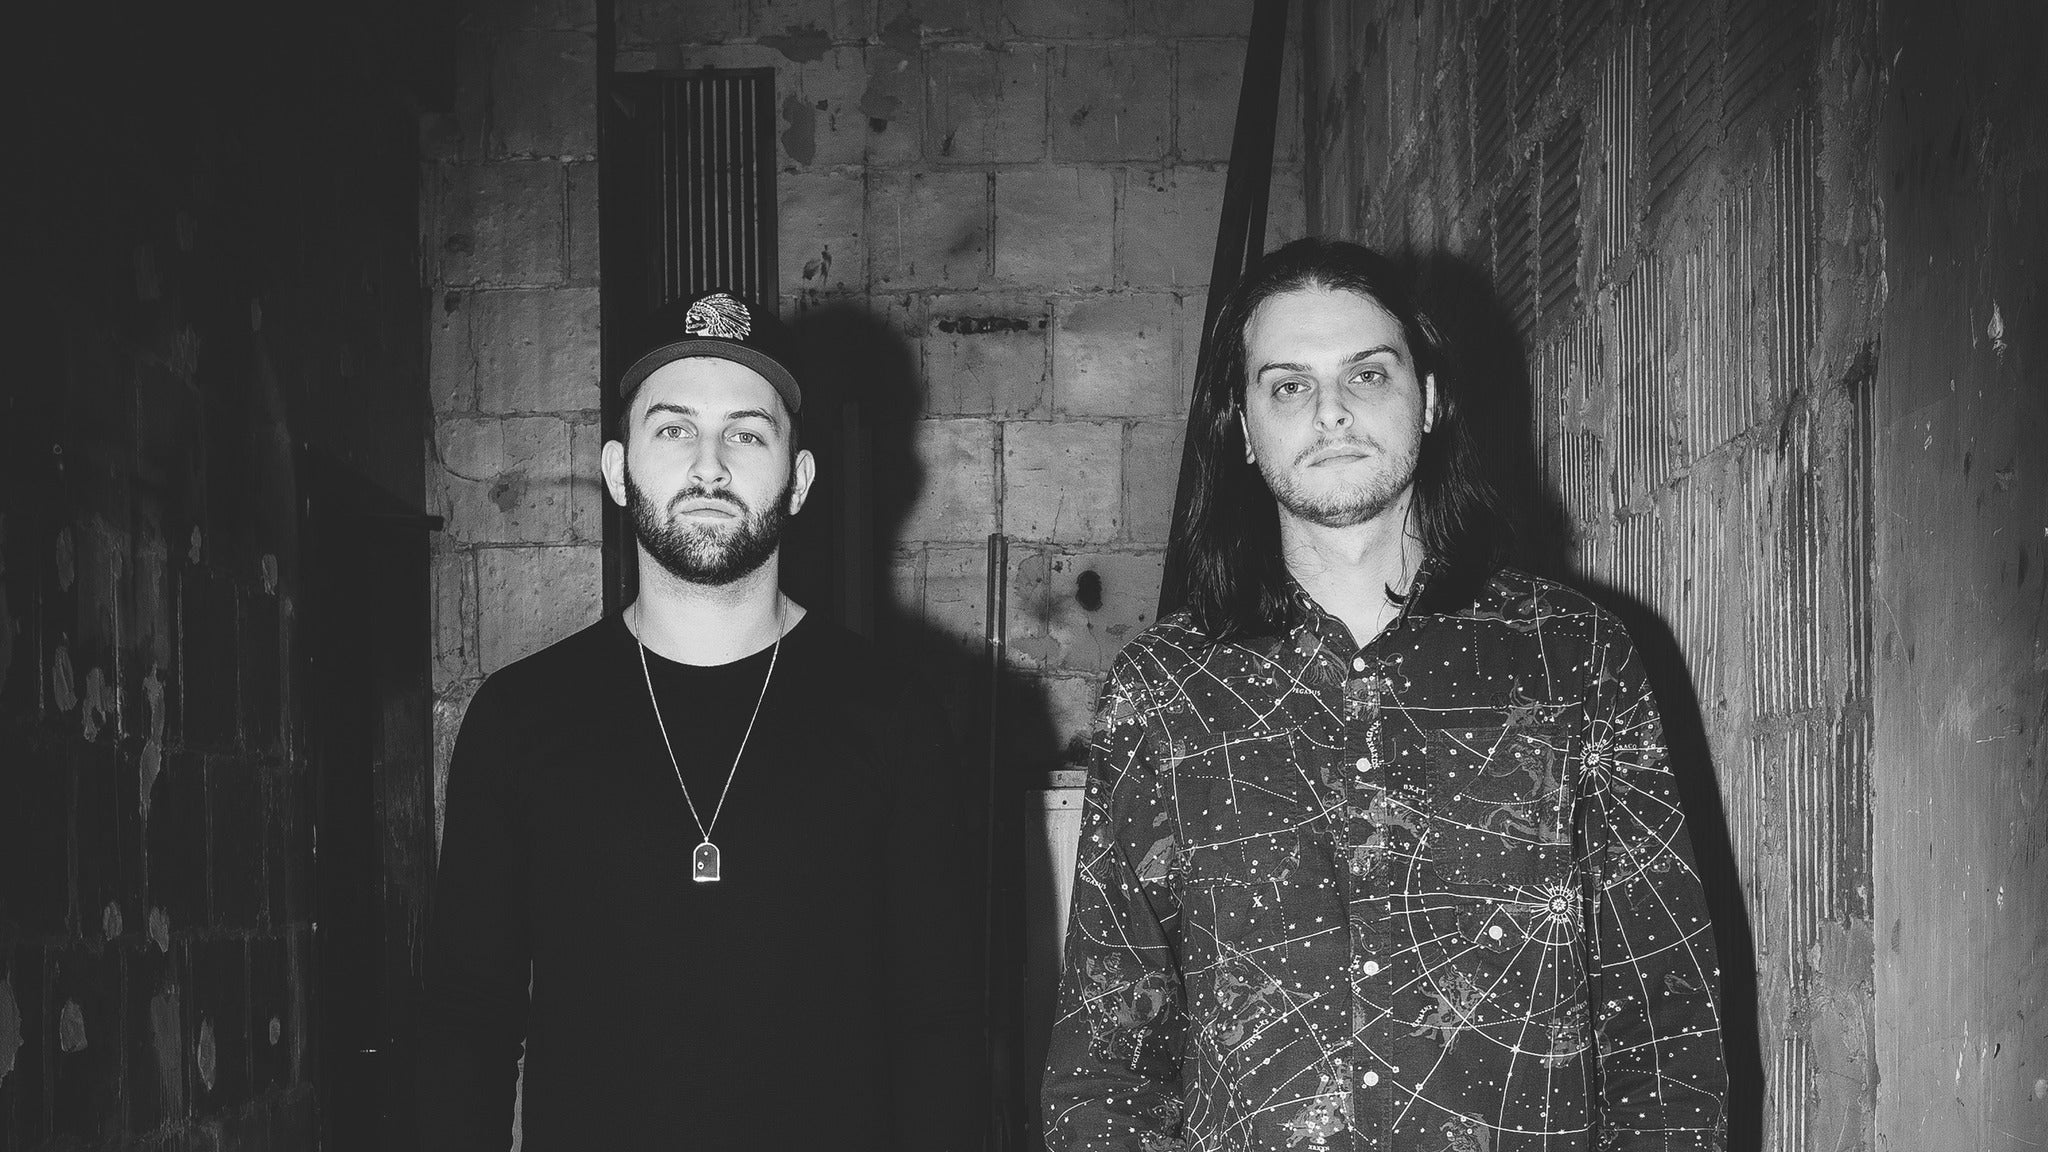 Zeds Dead at Red Rocks Amphitheatre - Morrison, CO 80465